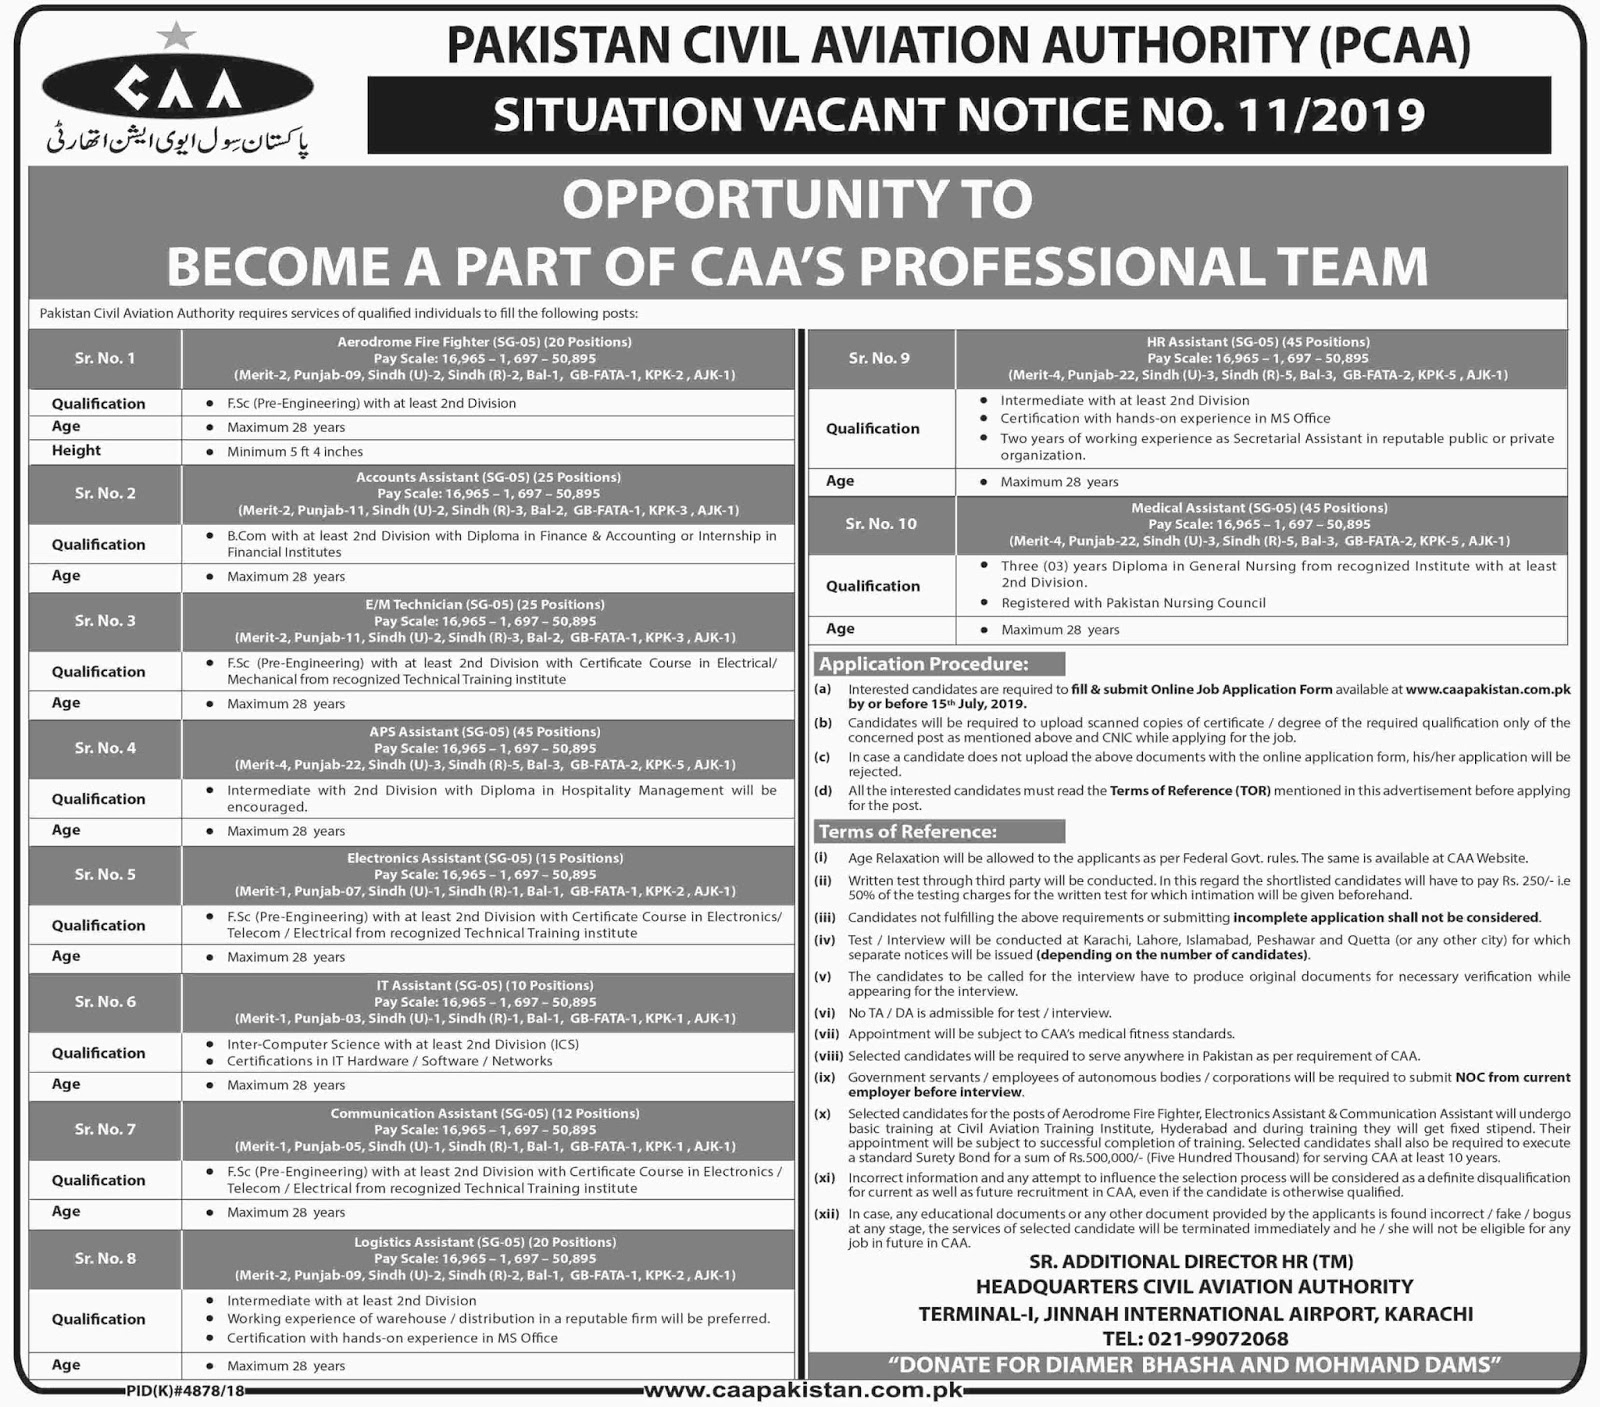 Advertisement for Pakistan Civil Aviation Authority Jobs